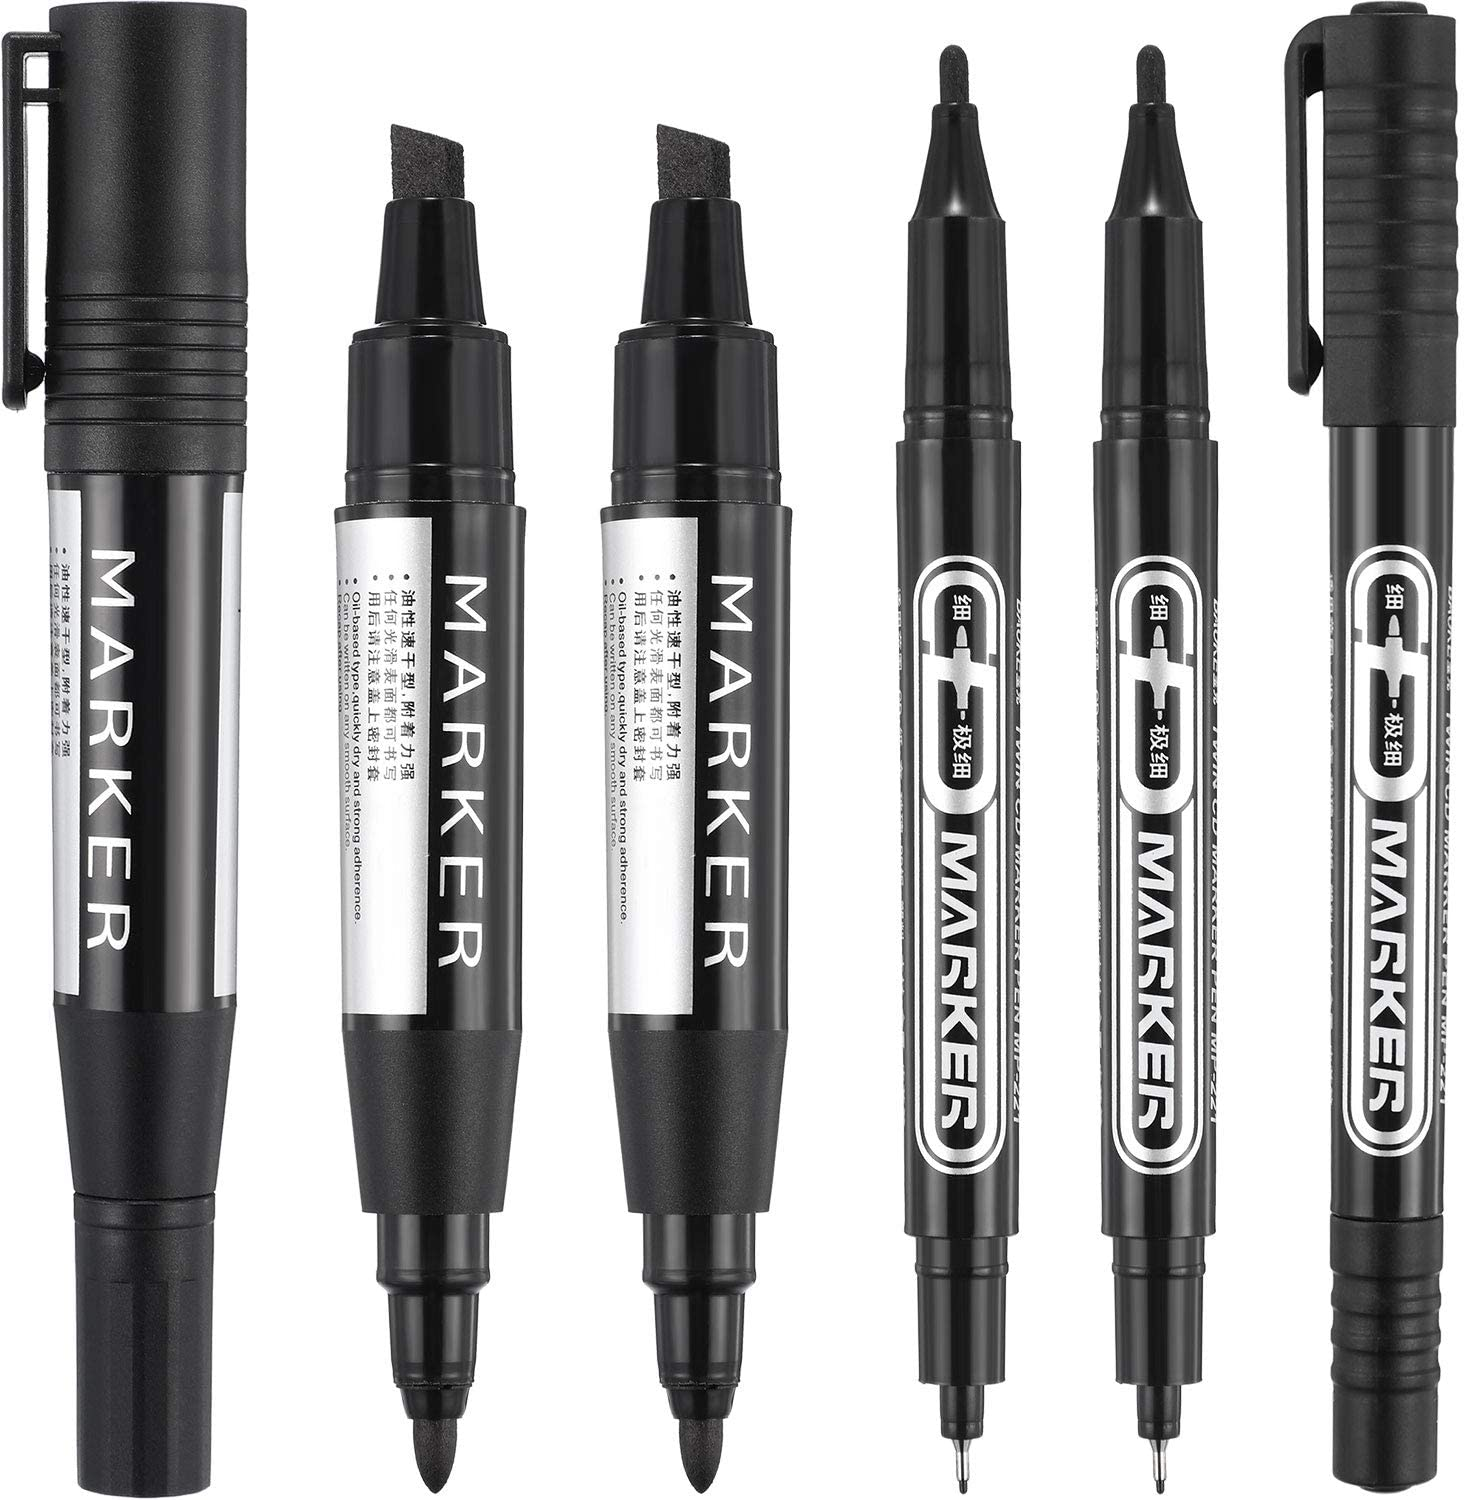 6 Pieces Permanent Markers, Different Sizes Double-Ended Permanent Marker Pen, Ultra Fine Tip, Fine Tip and Chisel Tip (Black)